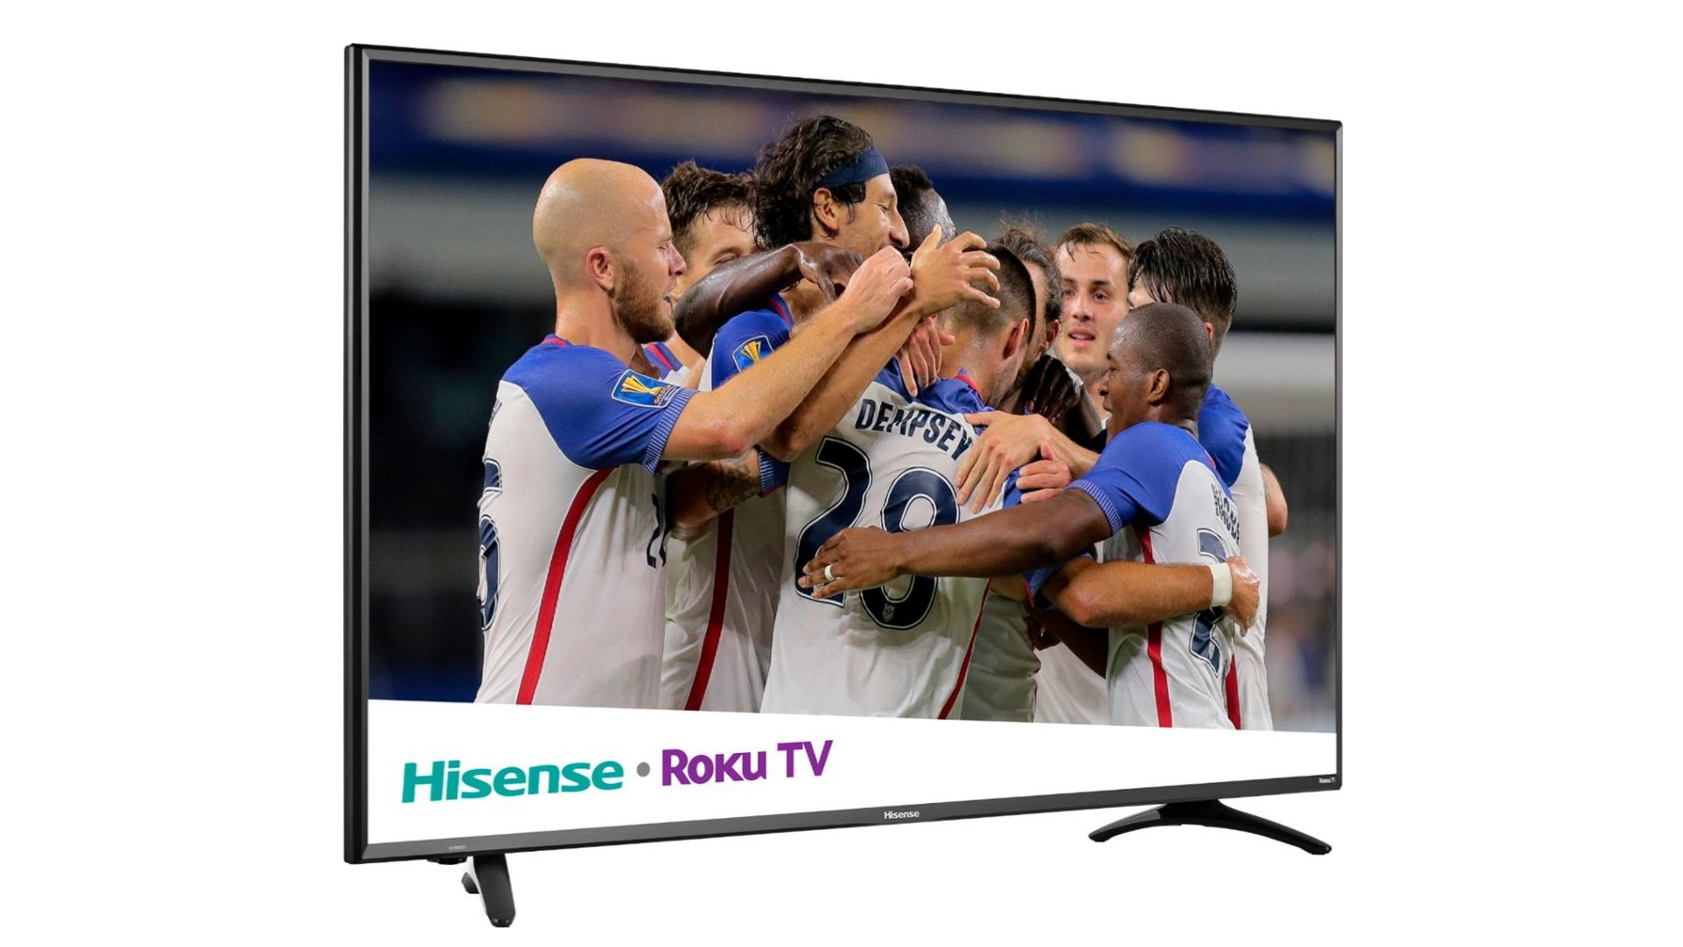 You can get a 55-inch Hisense 4K Roku TV for $300 ($200 off) at Best